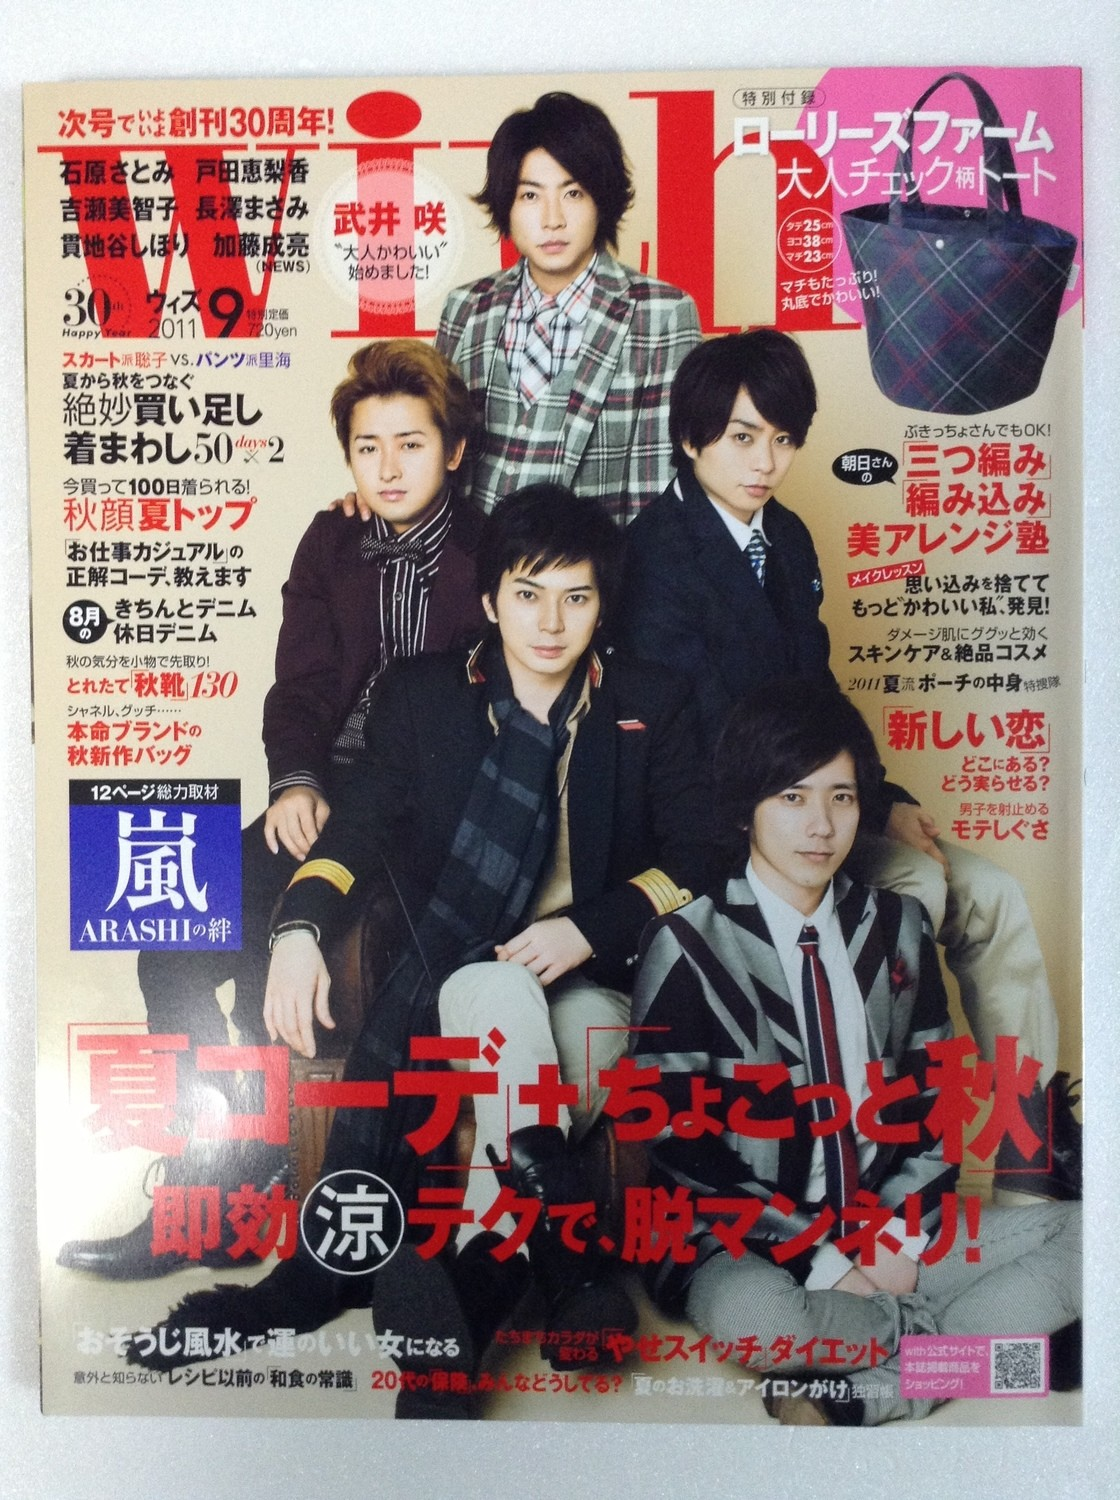 With September 2011 Magazine featuring Arashi